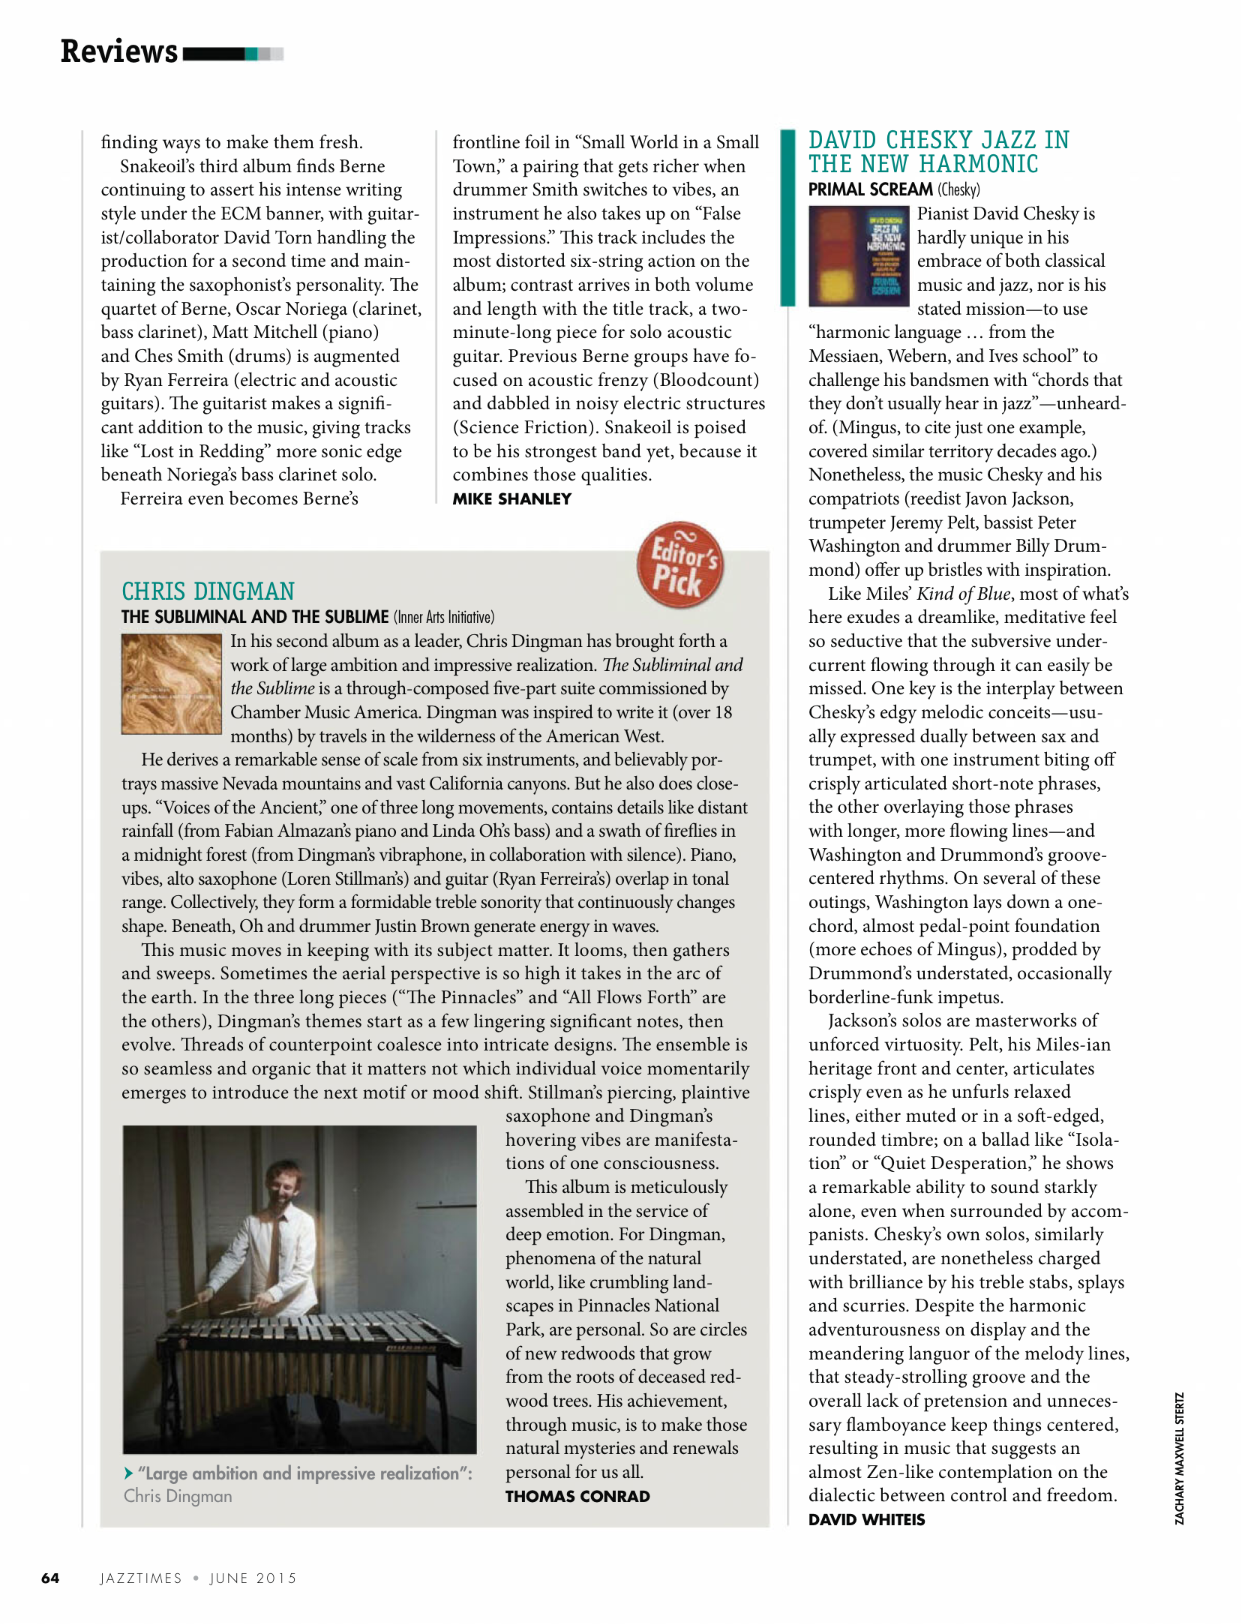 Review in June 2015 issue of JazzTimes